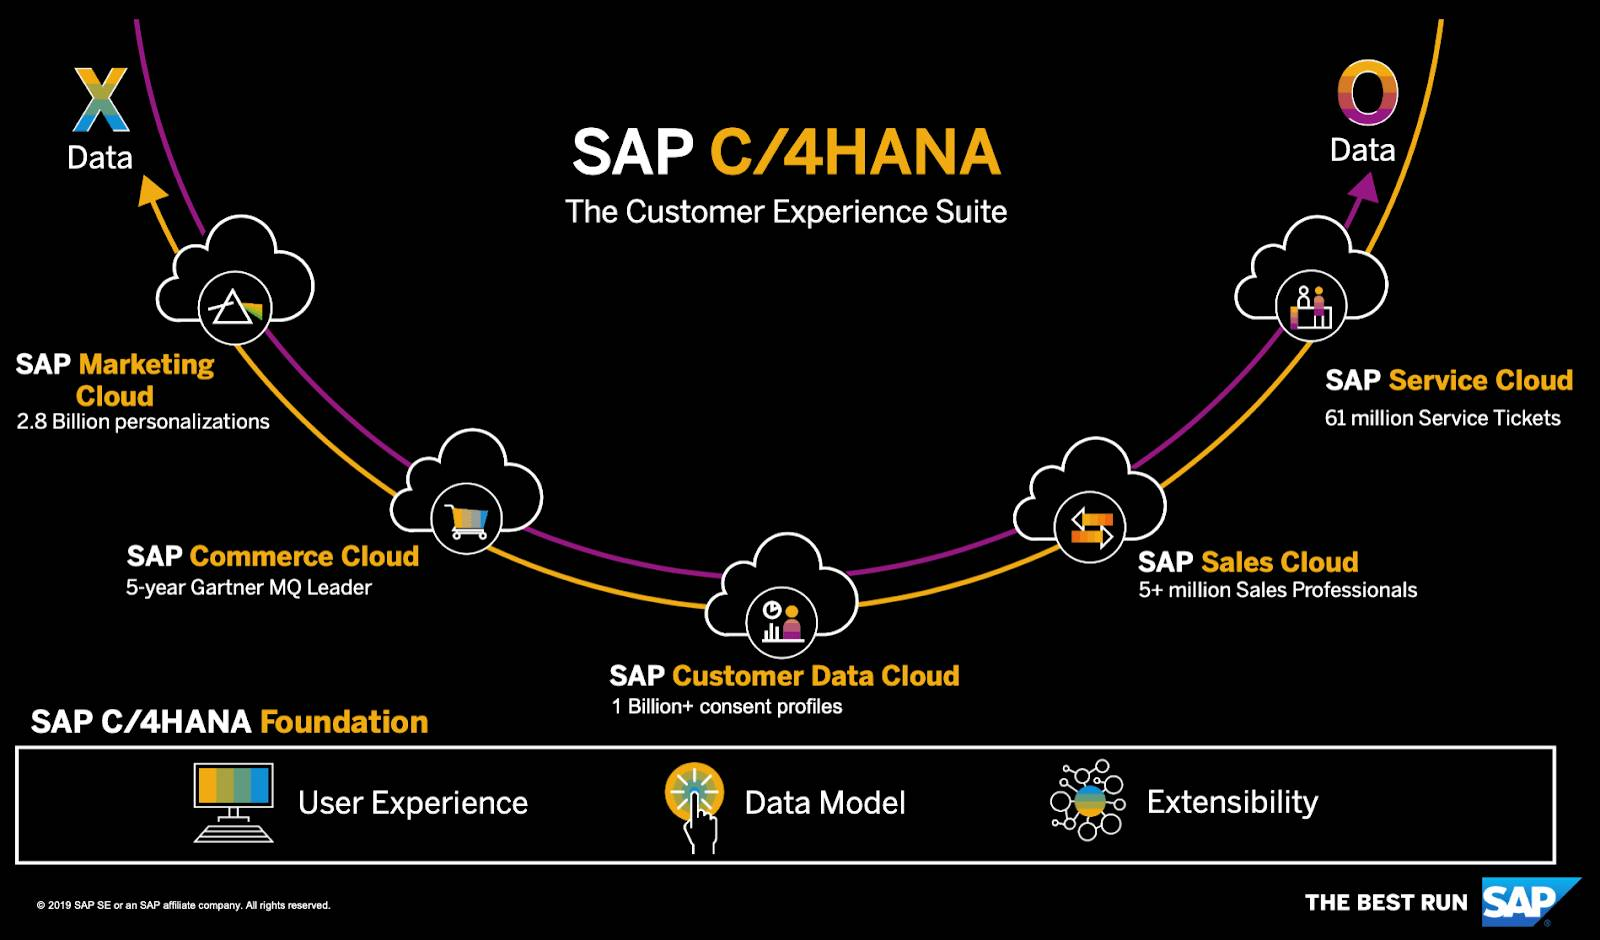 C/4HANA truly represents the most powerful set of tools to ramp up your digital business to the next level